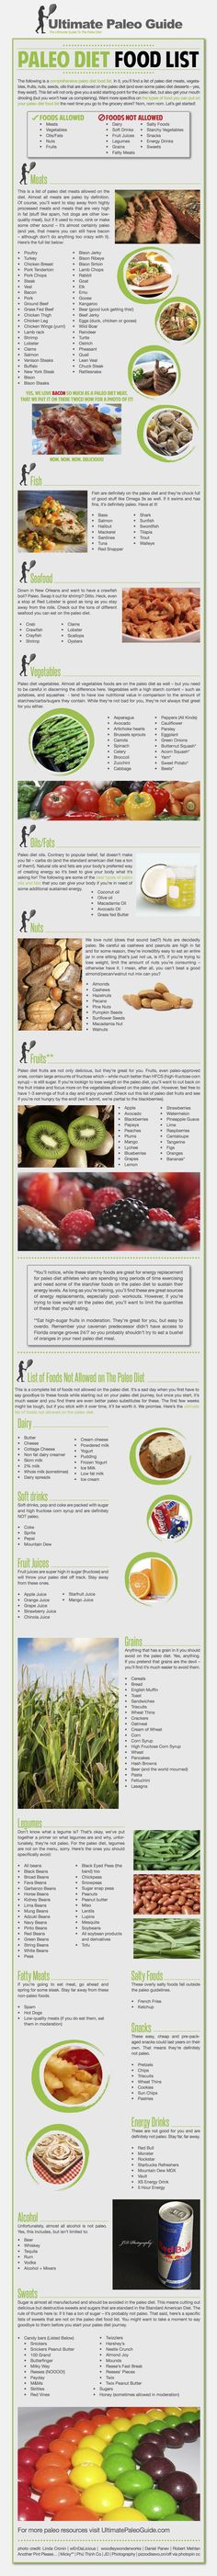 Paleo Diet Food List Infographic @Bryttin Schwenk Schwenk Jones-- is this what you were telling me about?